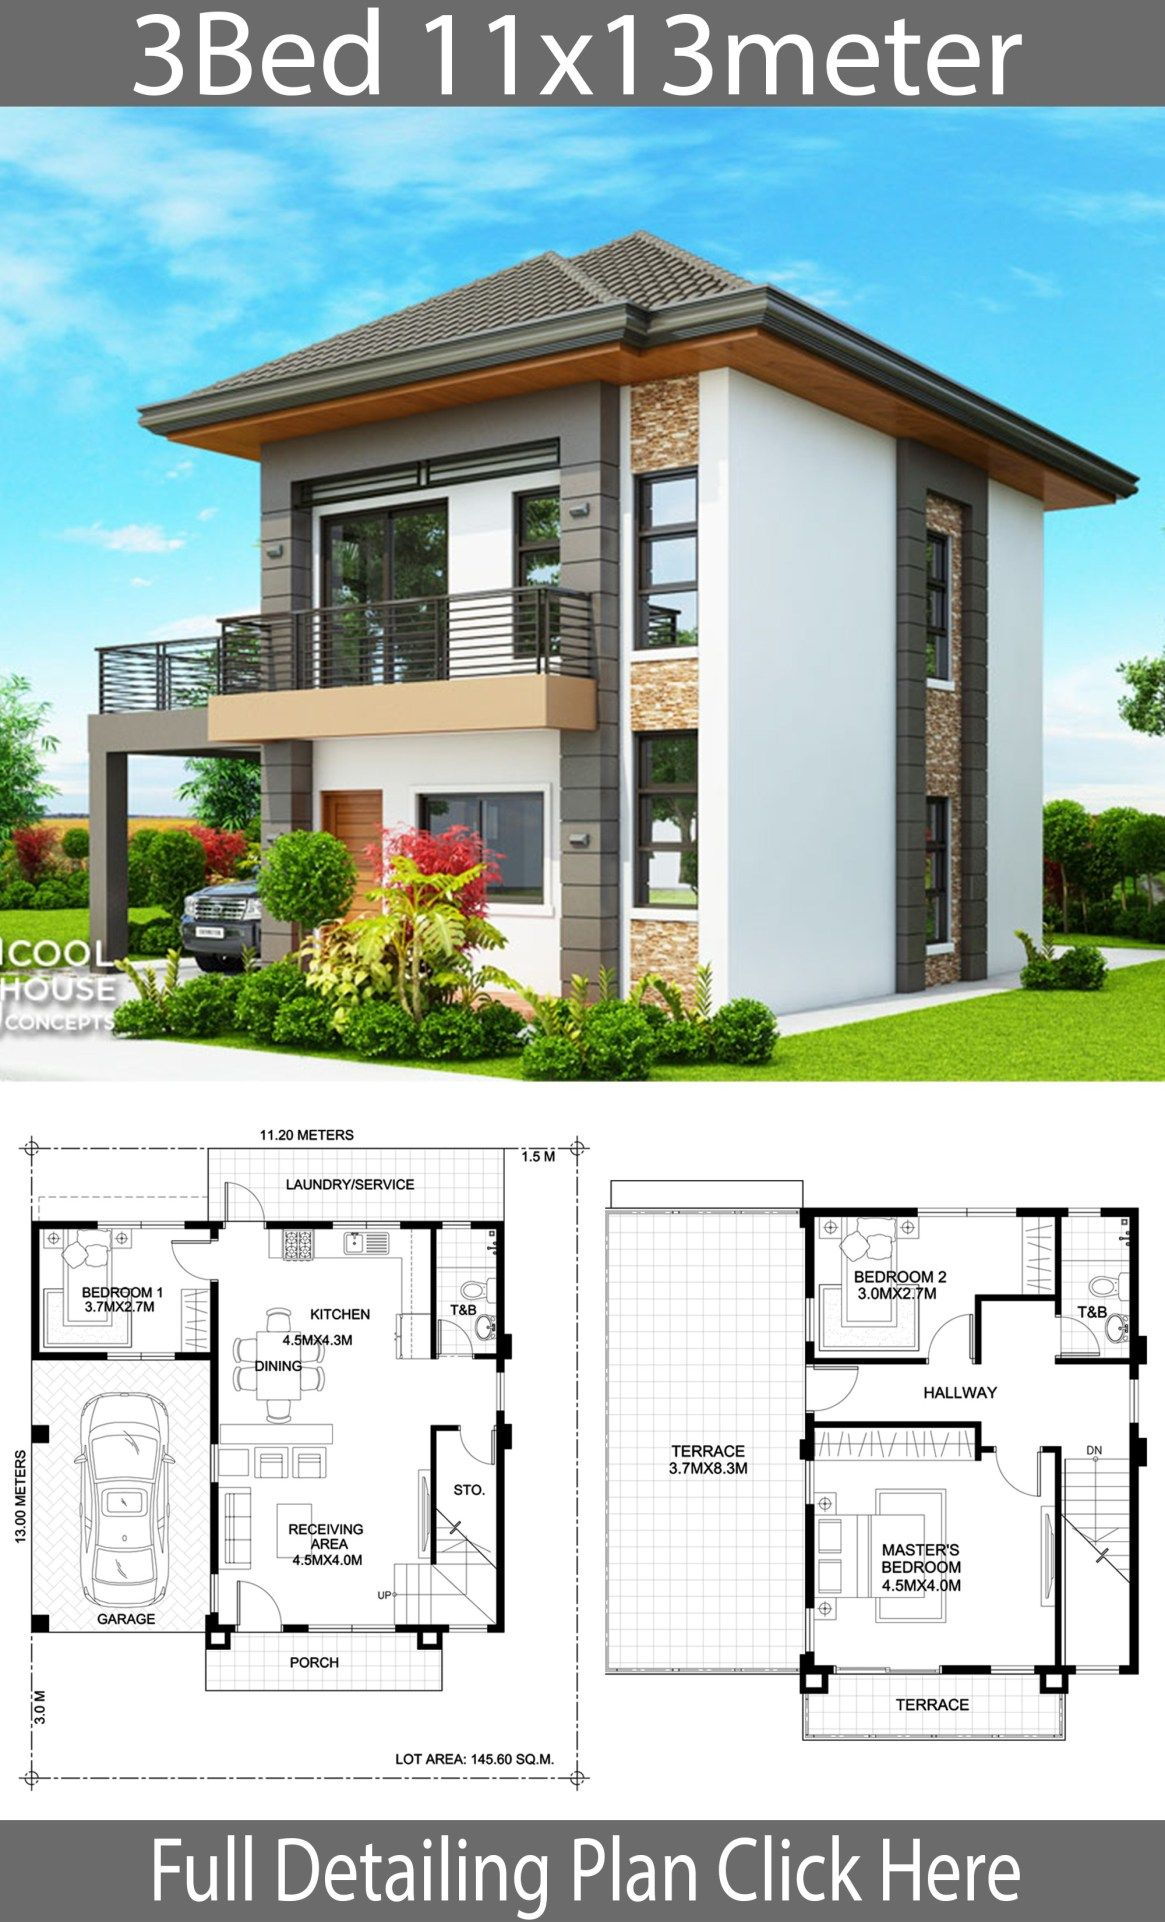 Home Design Plan 11x13m With 3 Bedrooms Home Design With Plansearch Philippines House Design House Construction Plan Two Story House Design